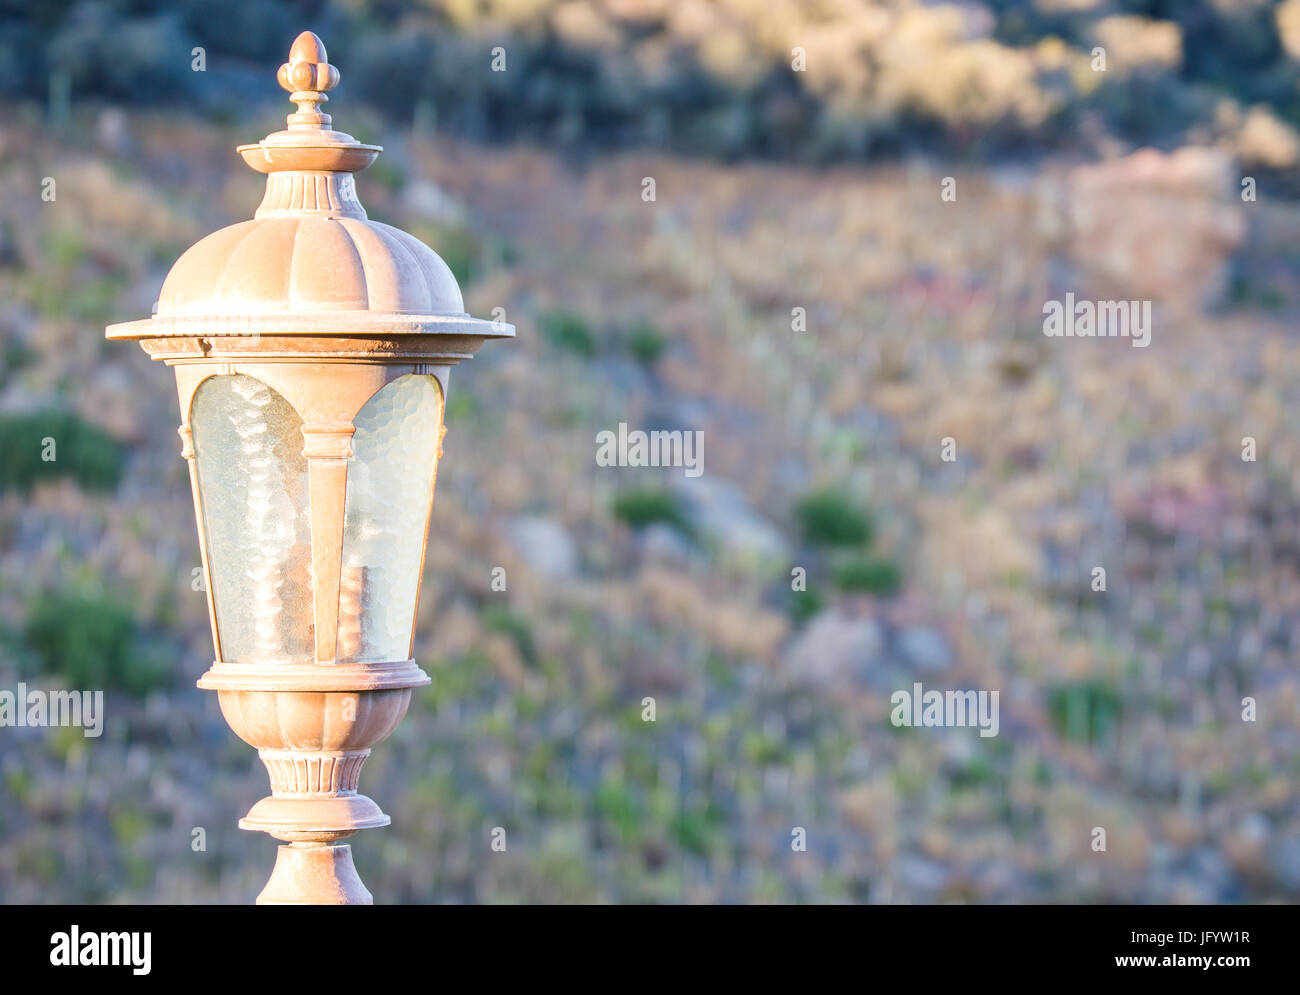 carriage lamp on hillside at sunset - Stock Image